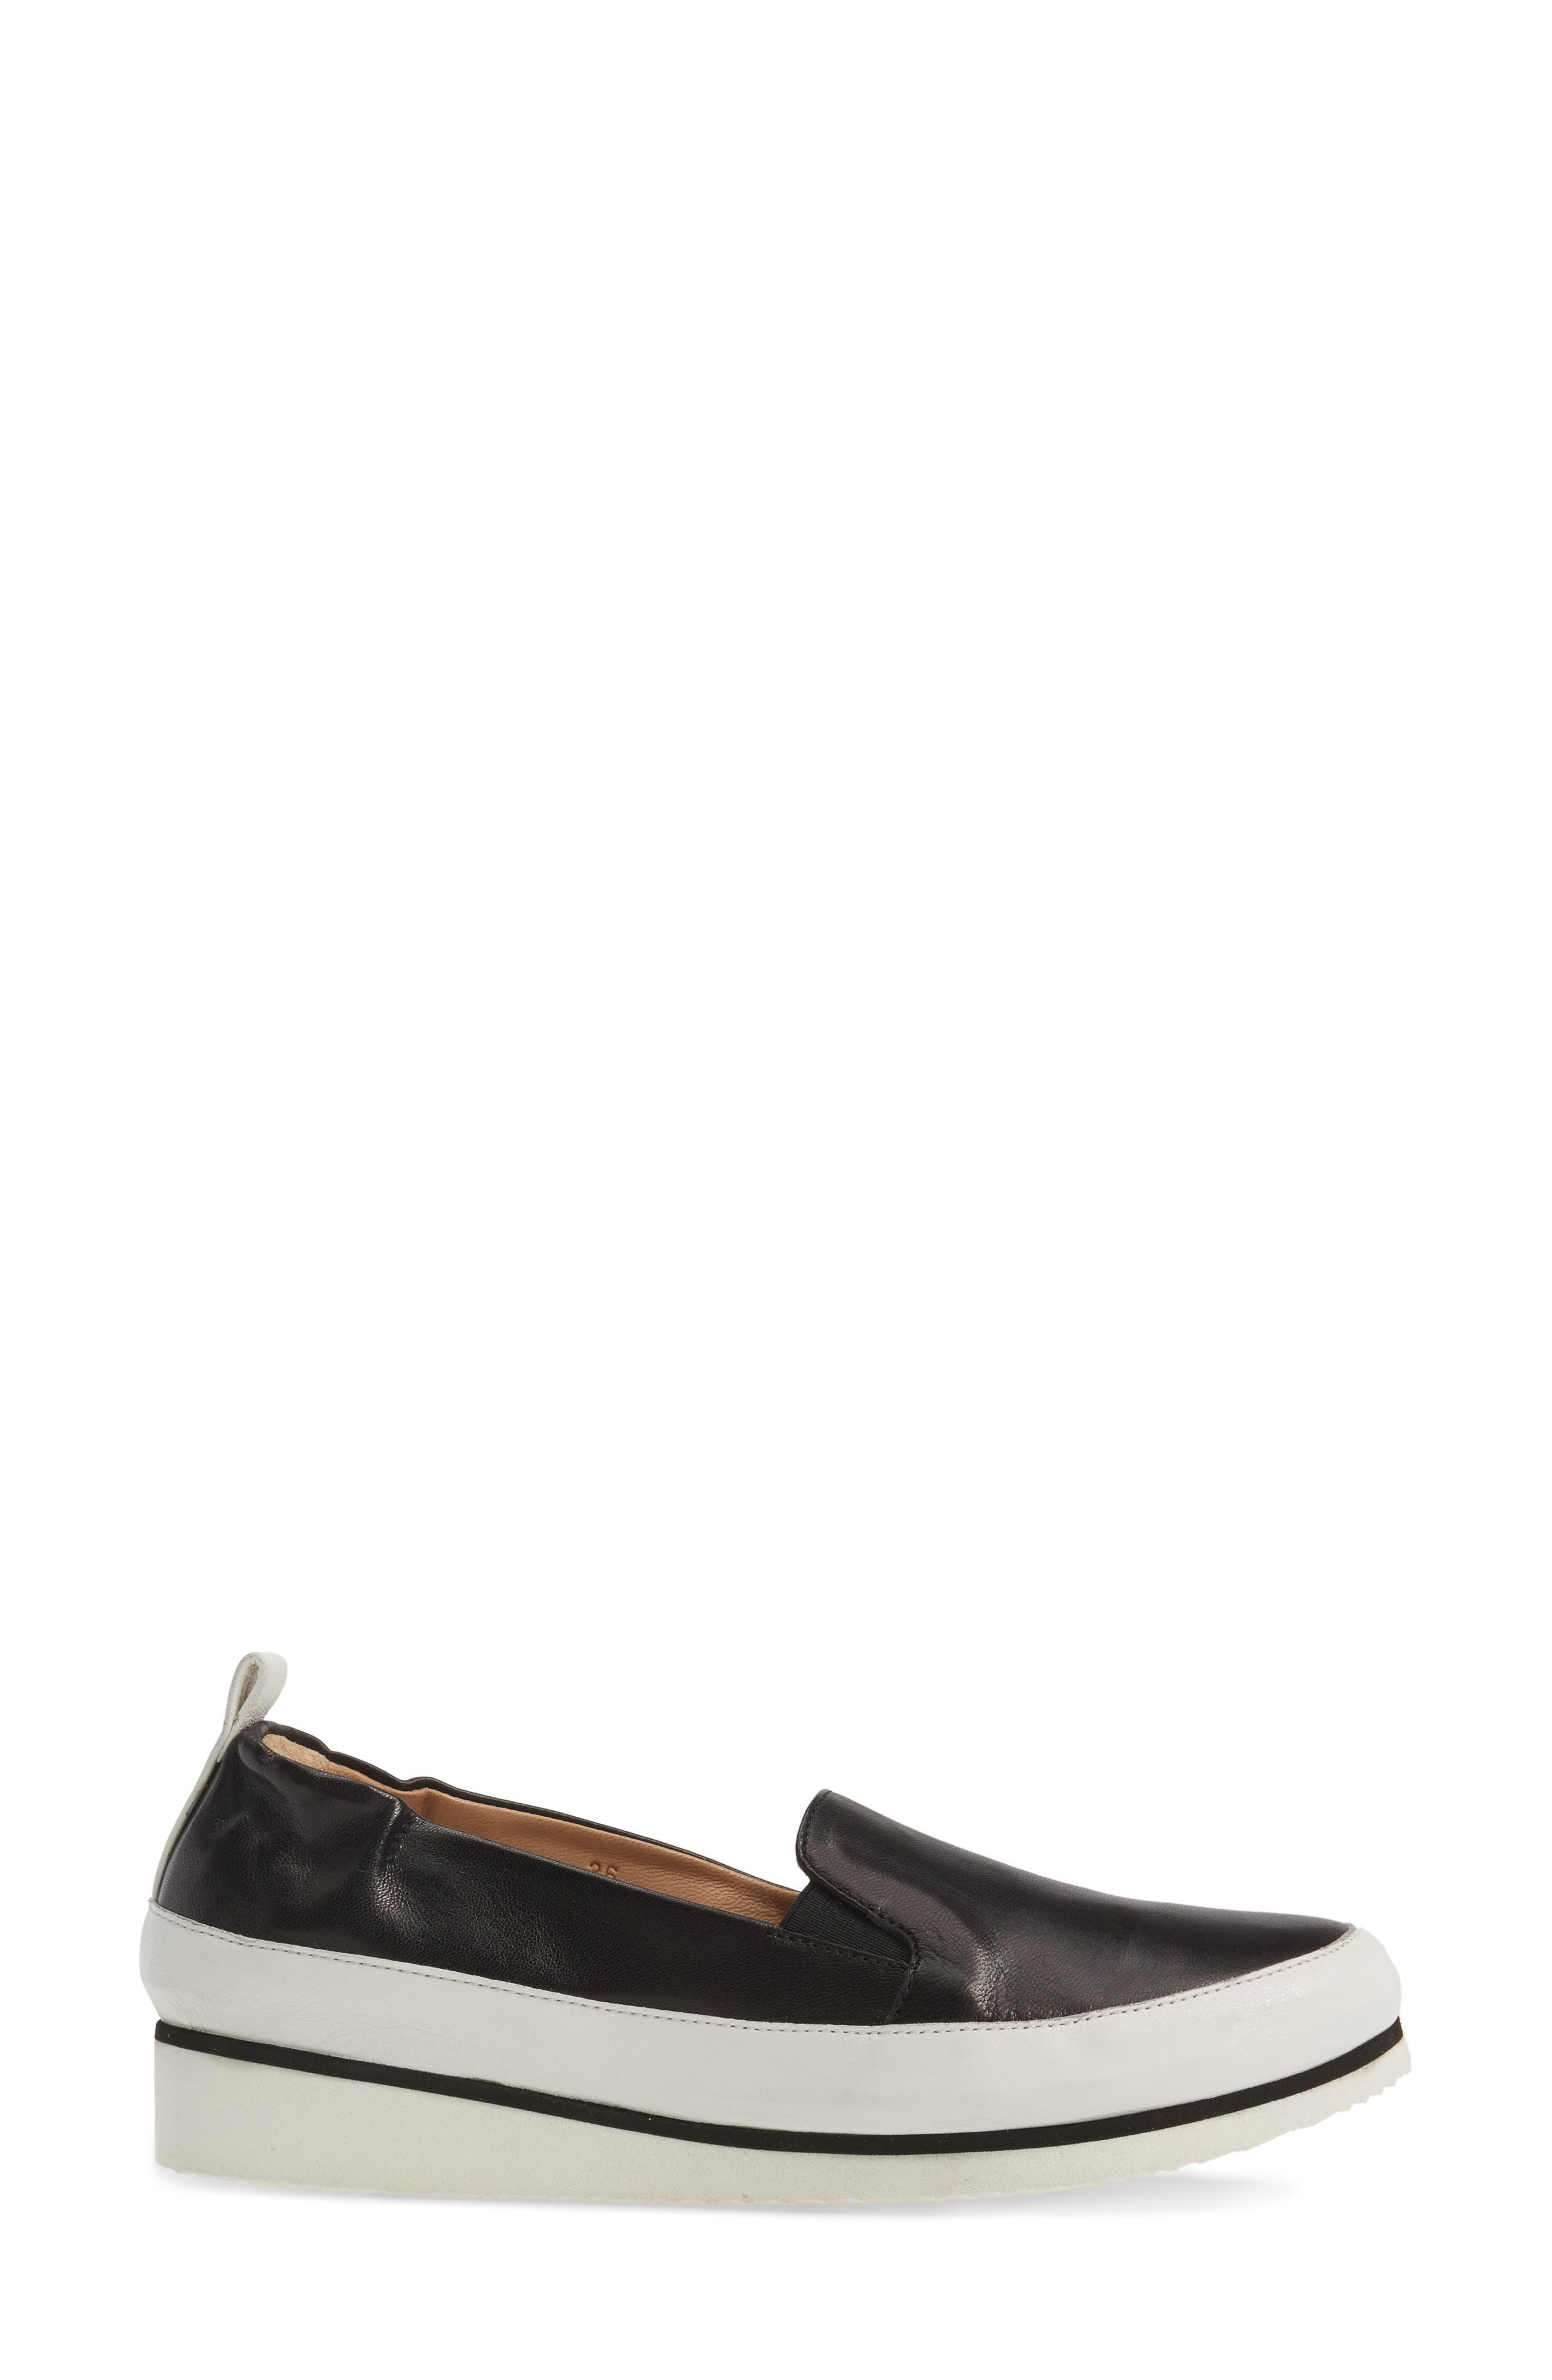 Nell Slip-On Sneaker,                             Alternate thumbnail 17, color,